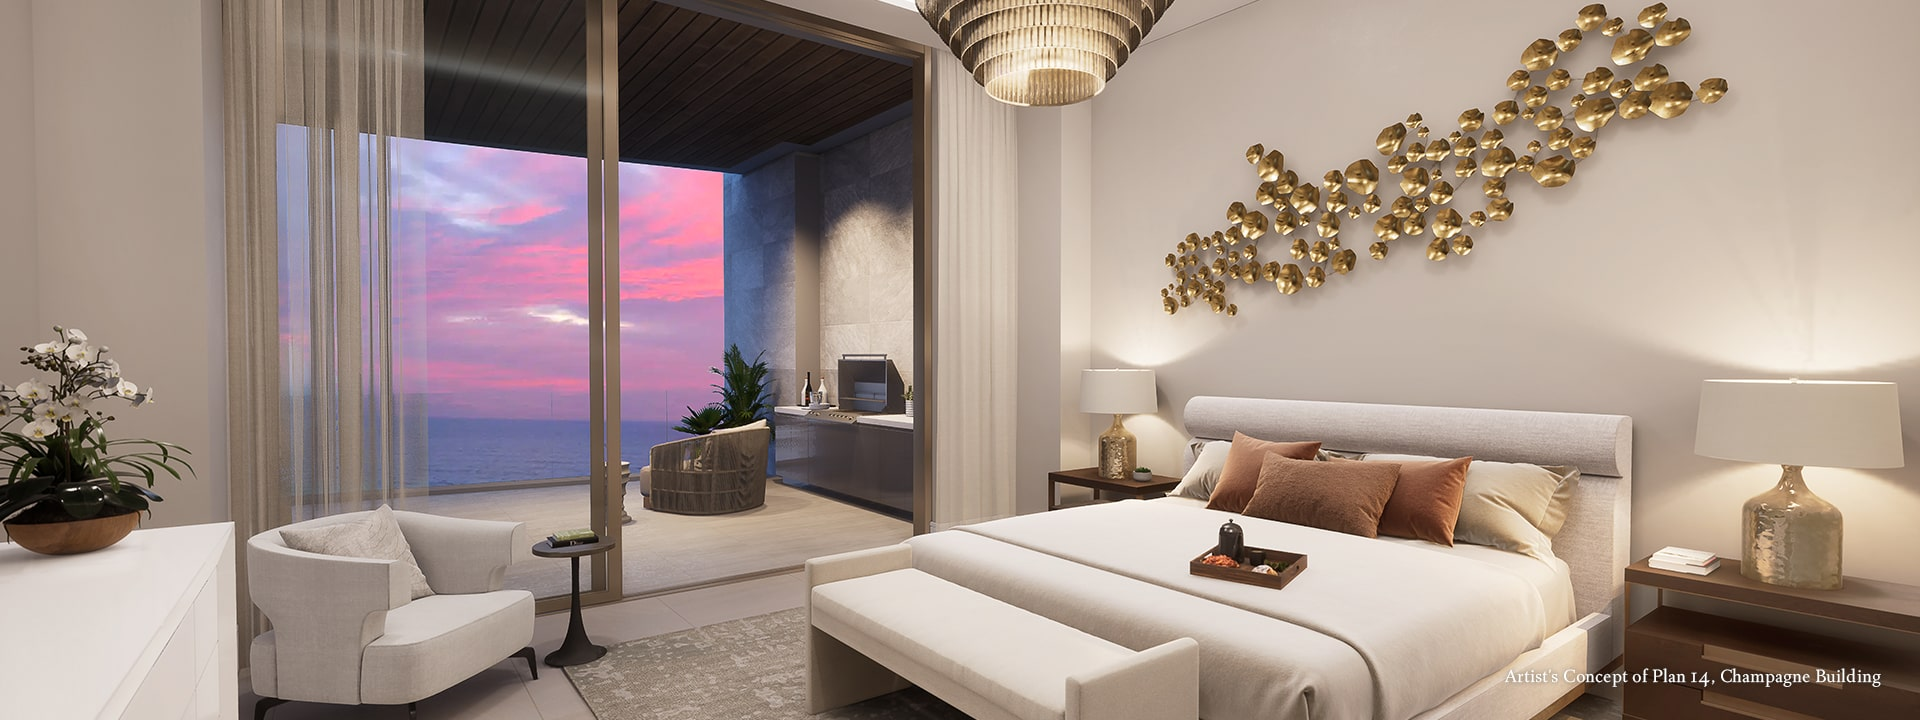 Champagne Plan 14 Master Bedroom Rendering at The St Regis Longboat Key Resort